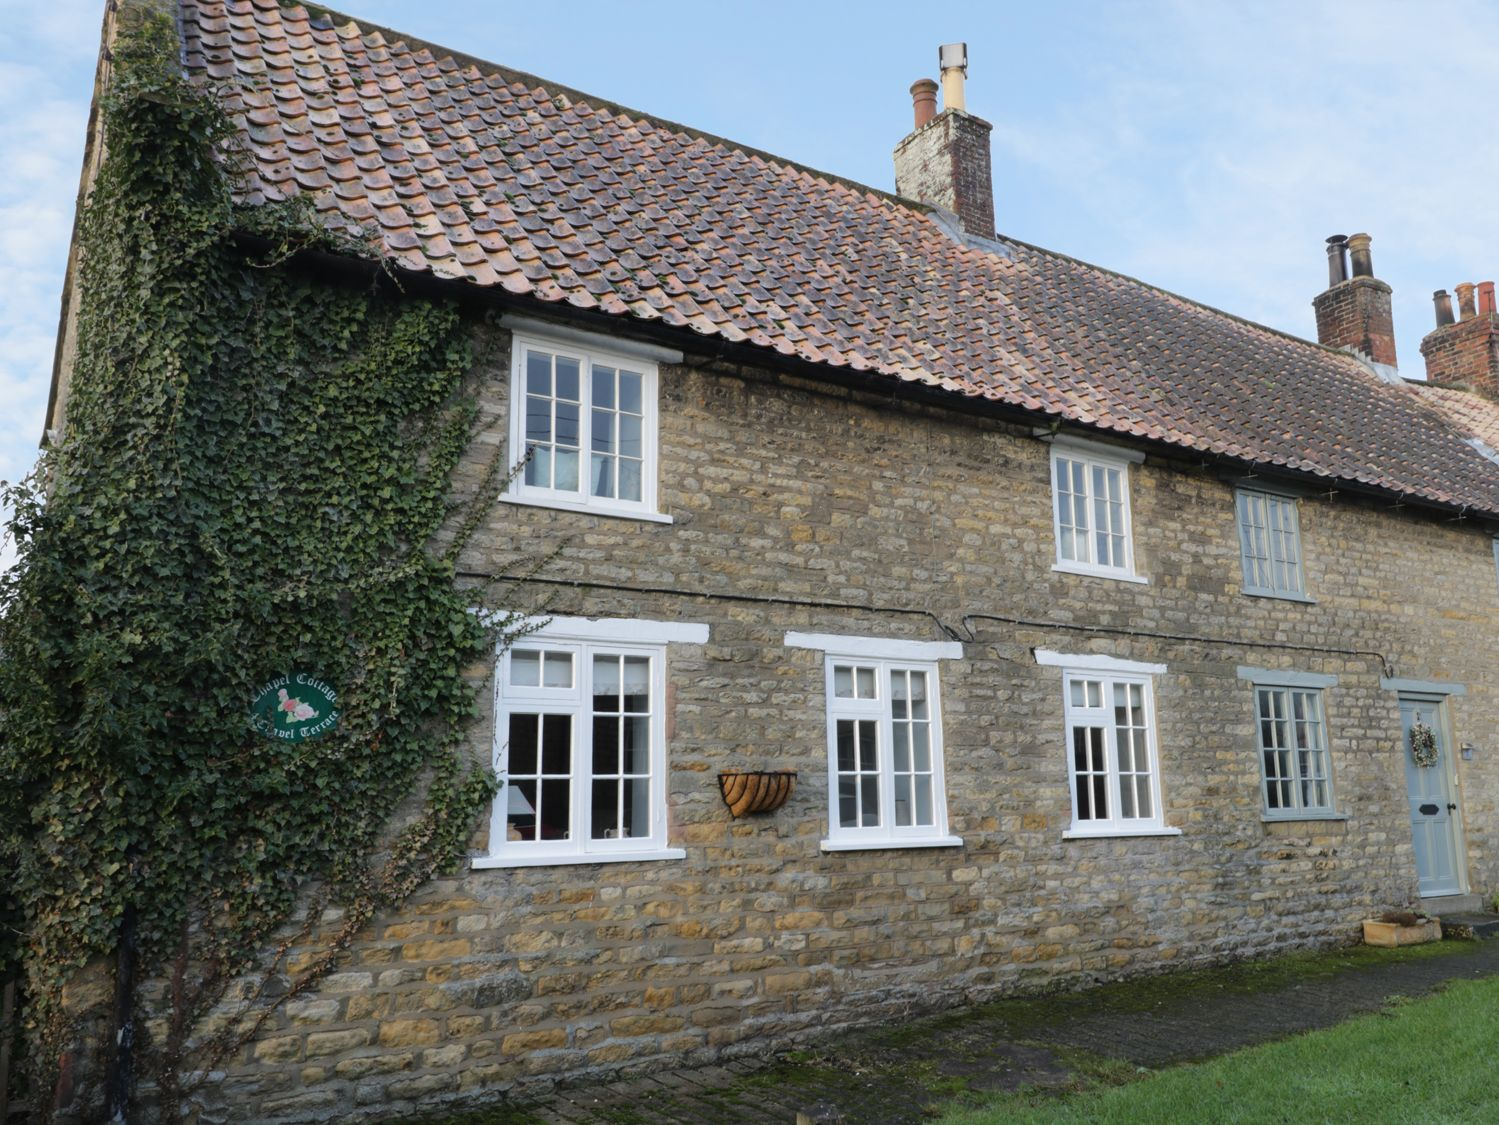 Photo of Chapel Cottage Ebberston ( Ref 971019 ) Self catering accommodation in Ebberston near Scarborough North Yorkshire